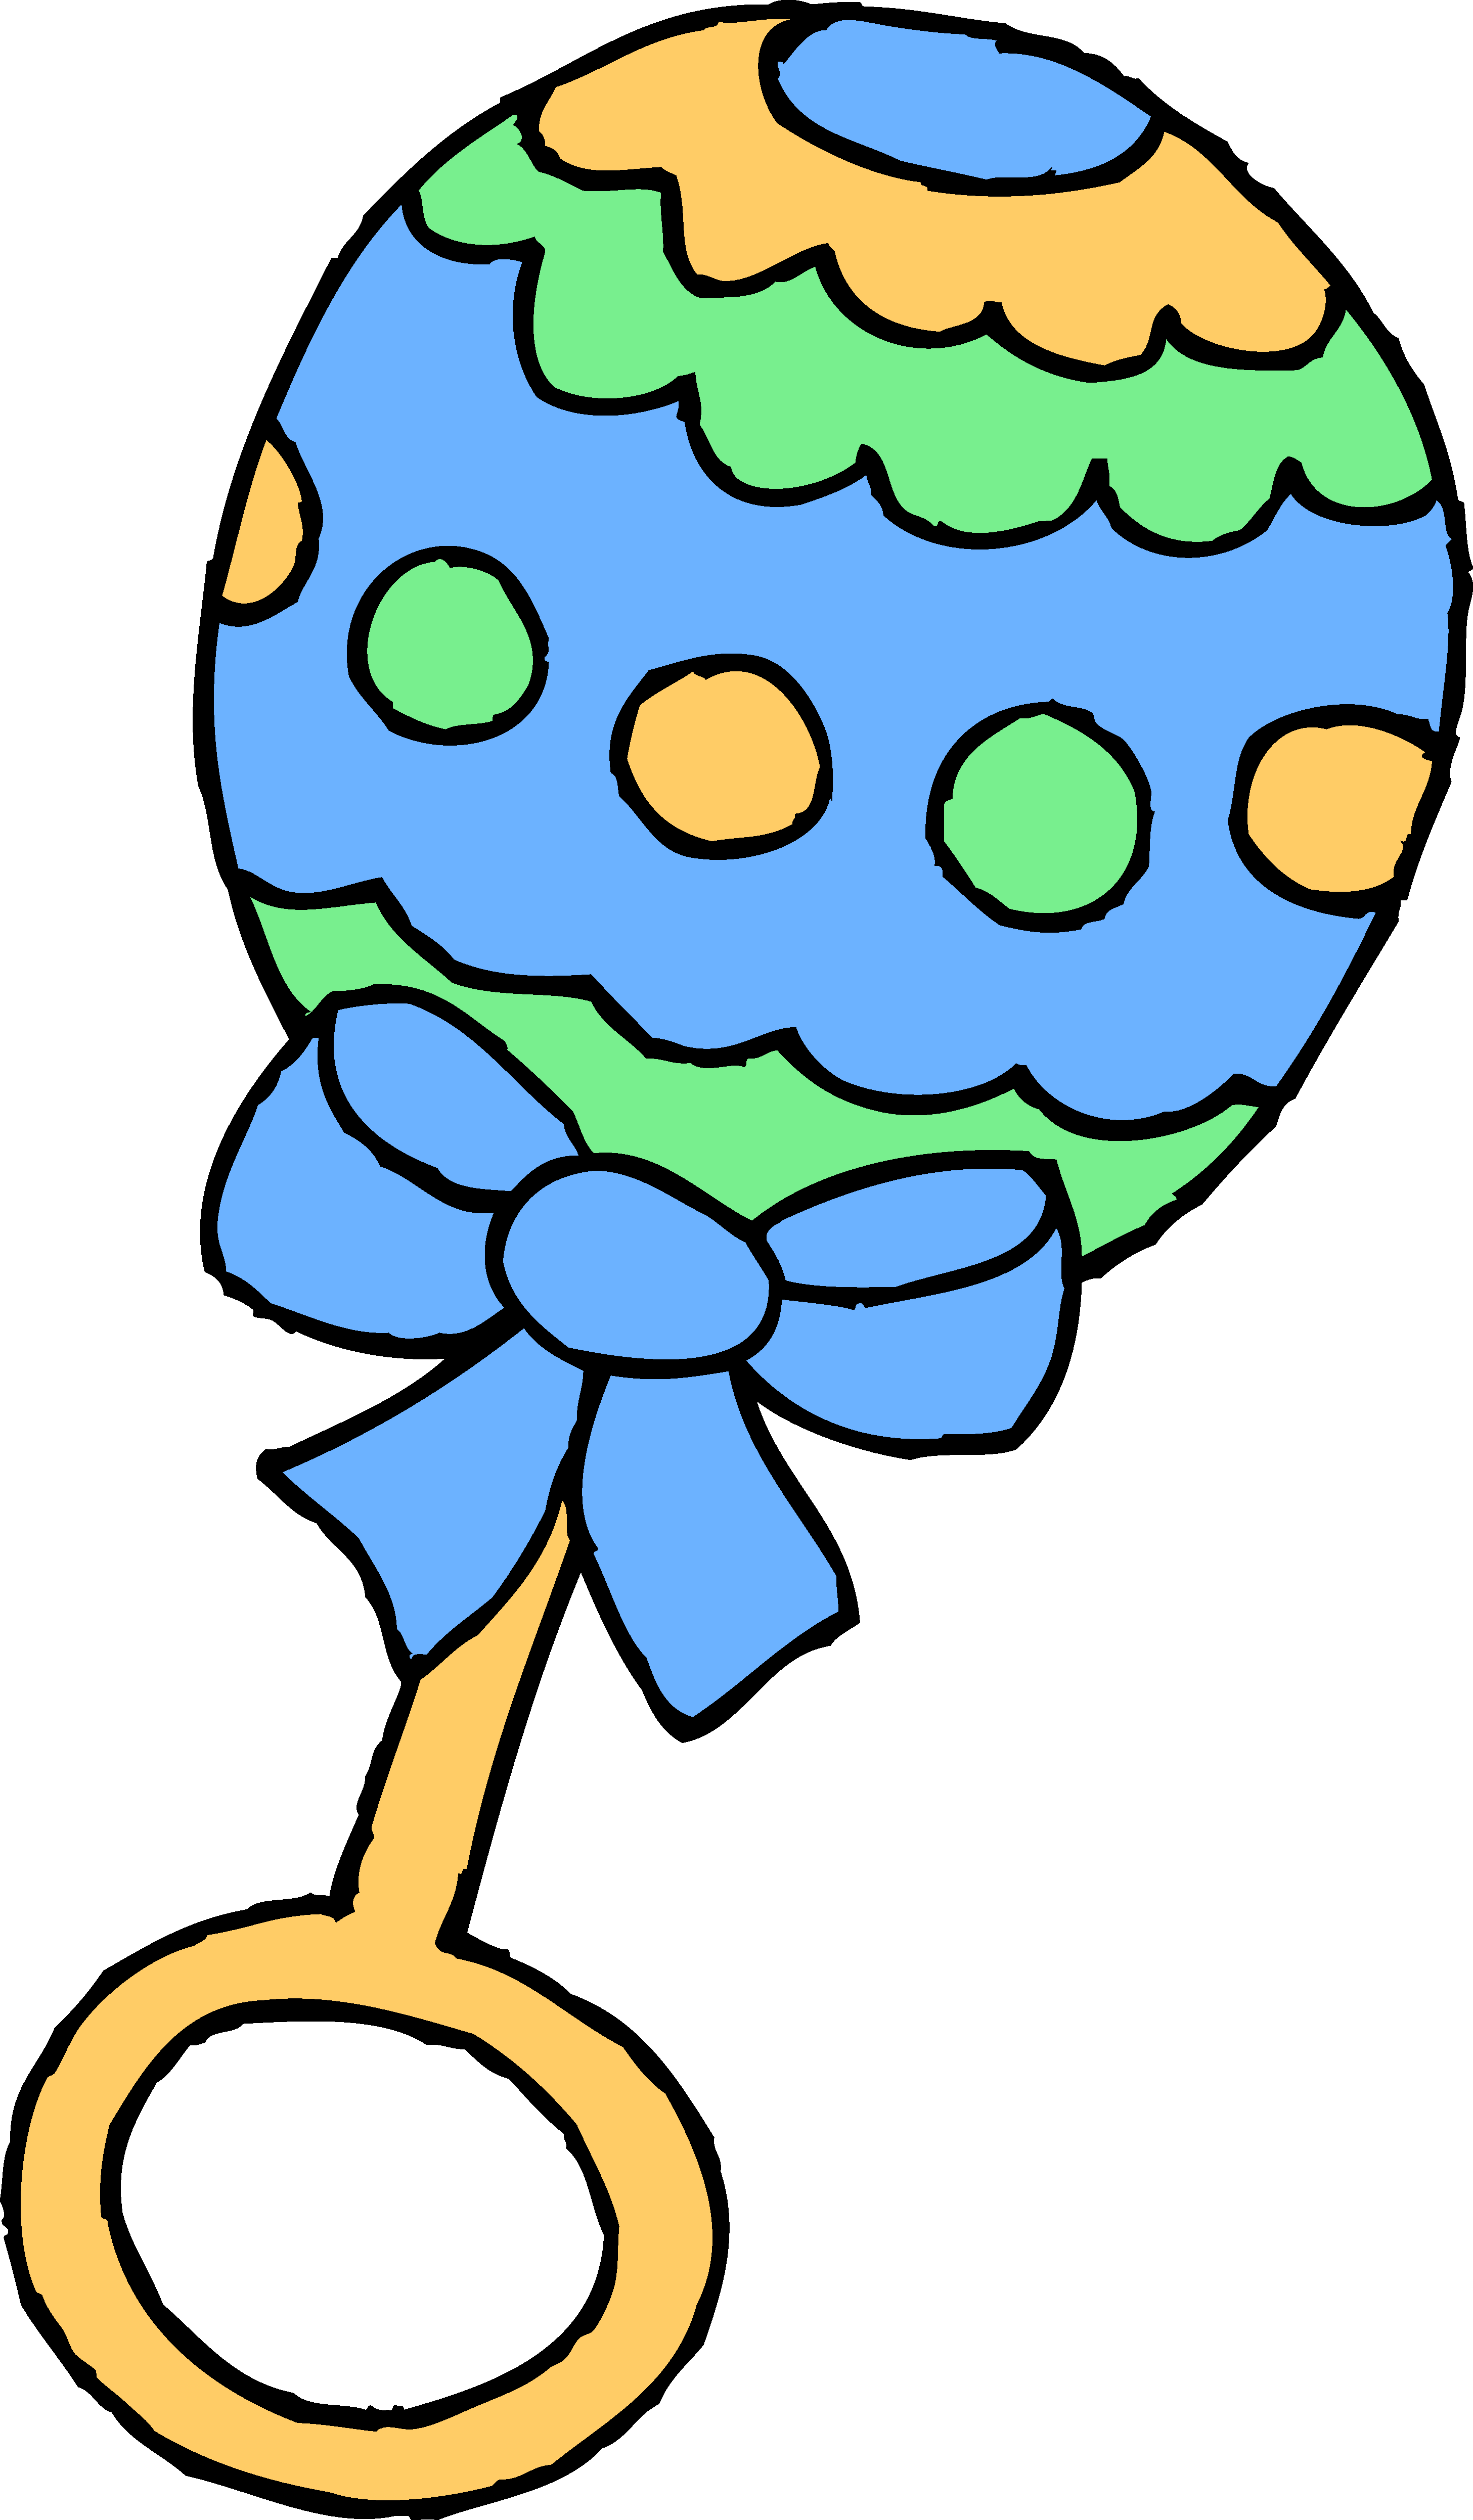 Baby rattle rattle clipart free images 4